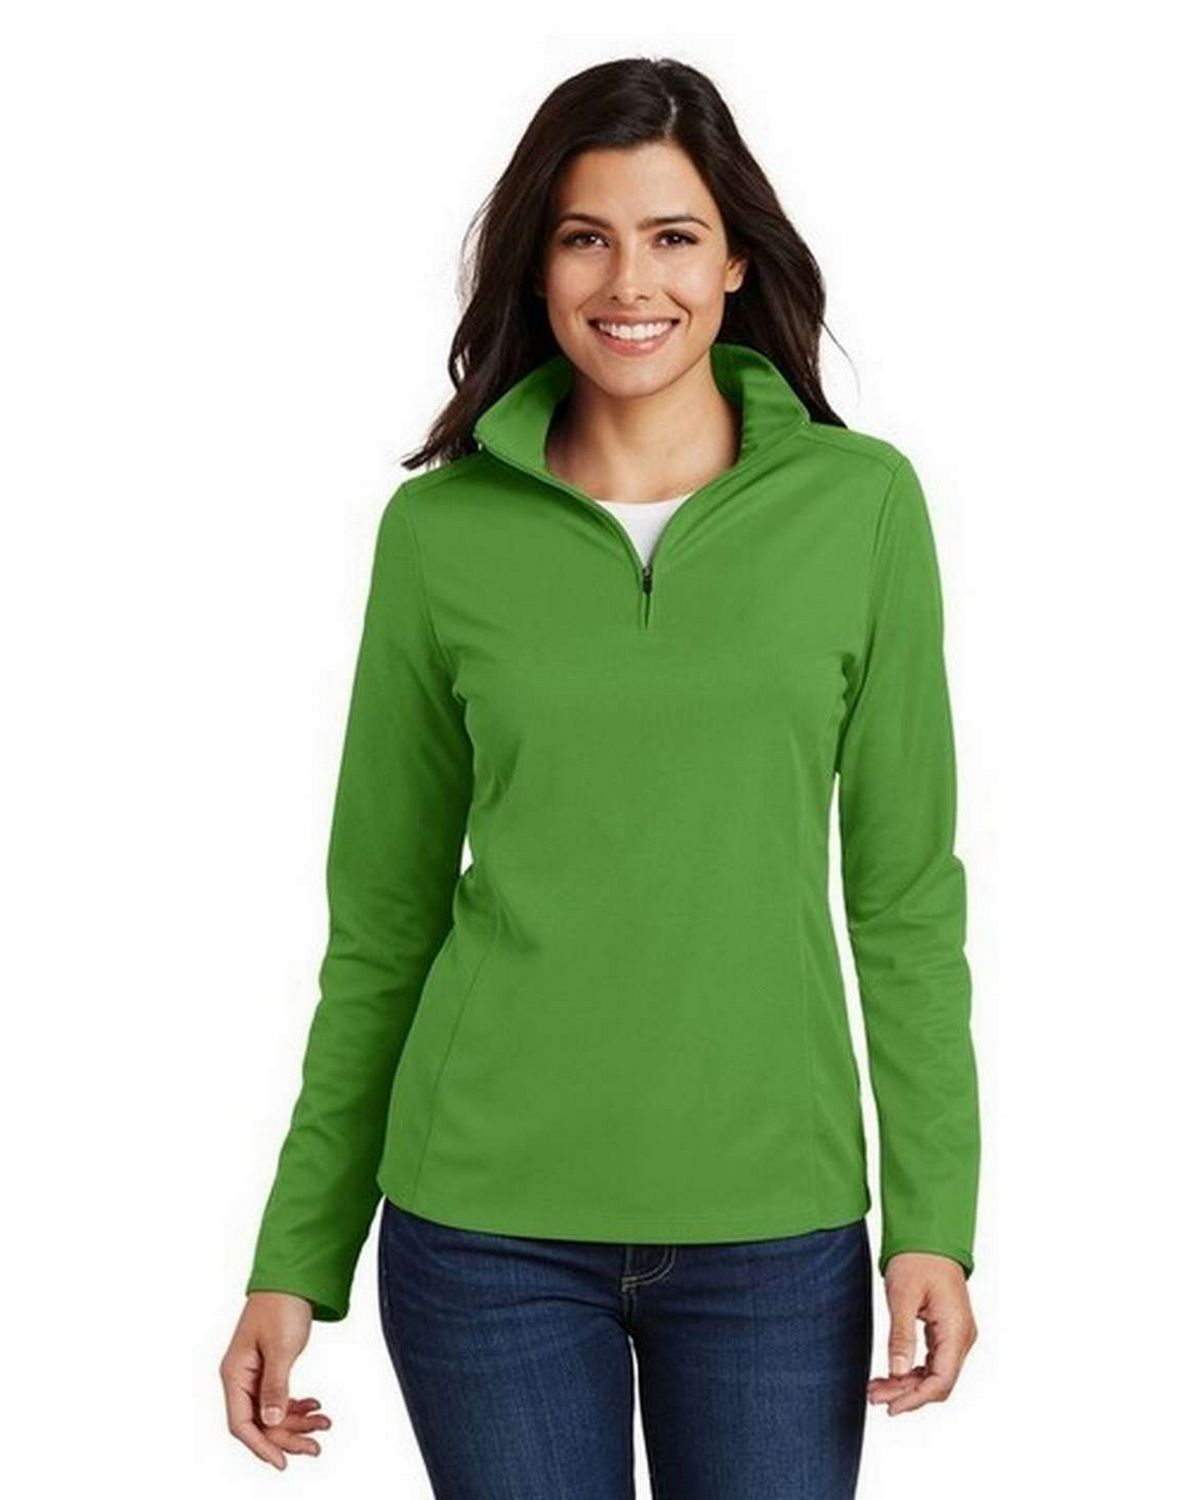 Port Authority L806 Ladies Pin Mesh 1/2-Zip